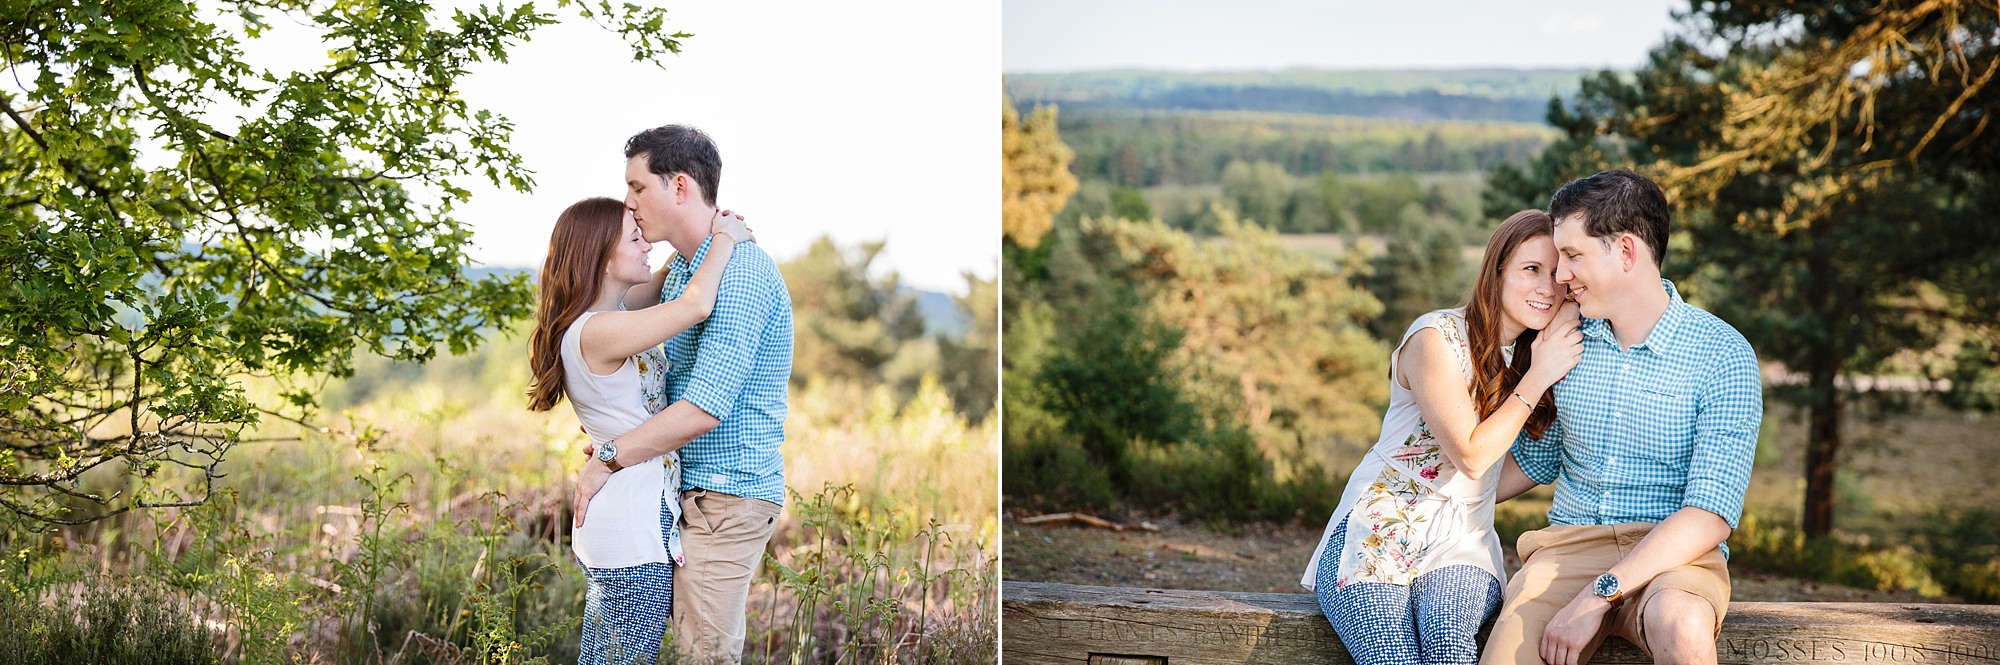 Farnham engagement photography at frensham pond